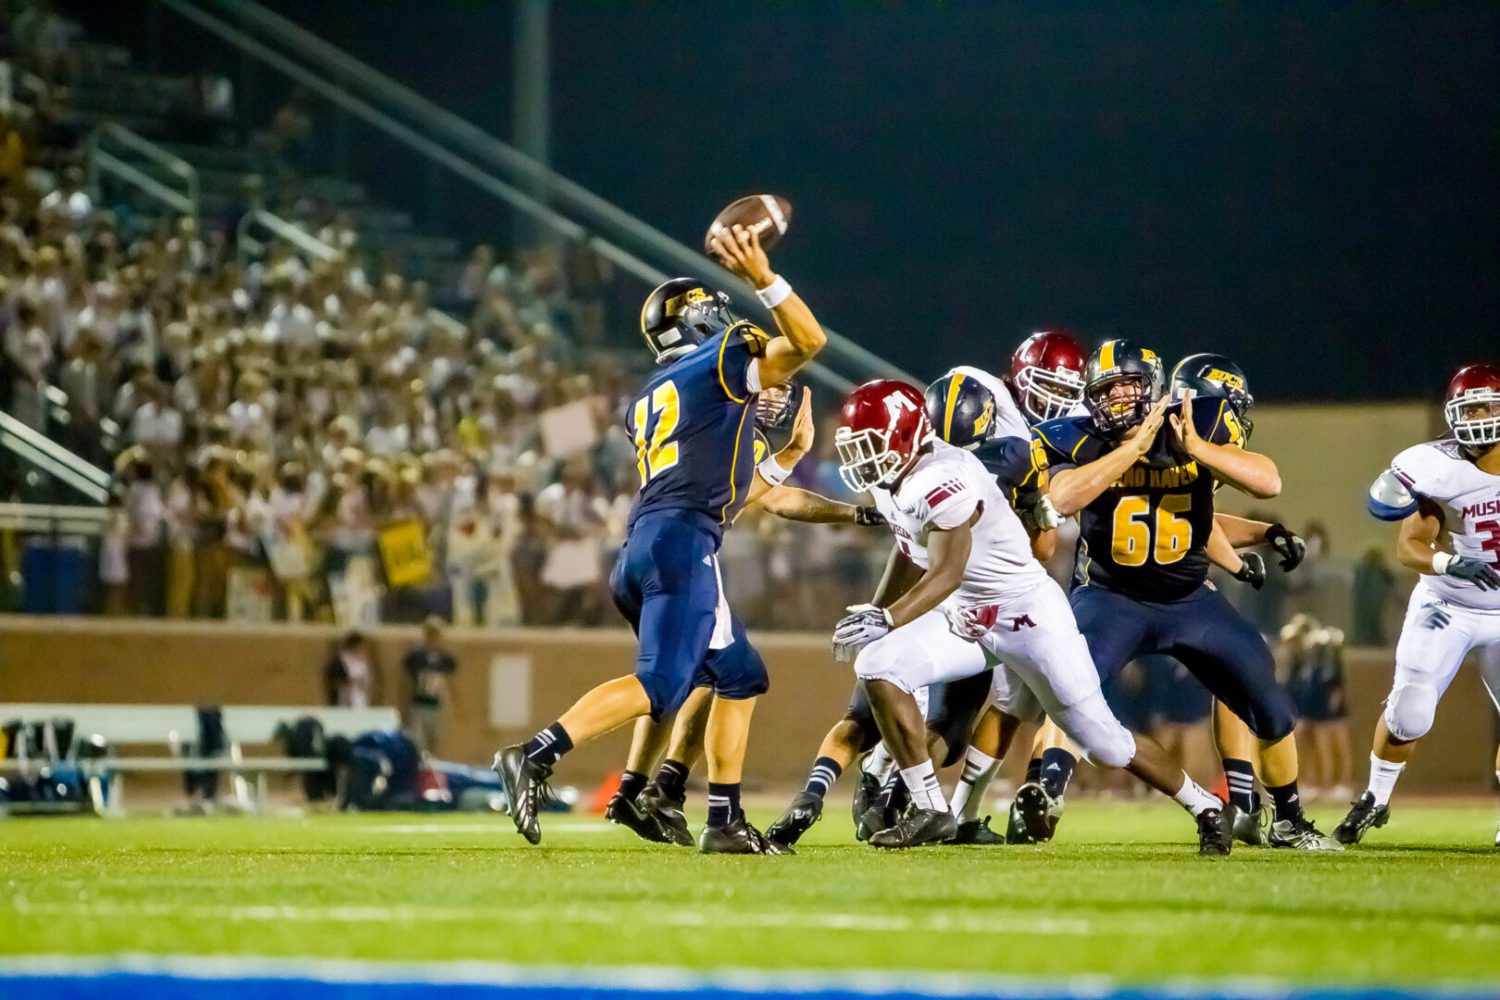 Lady luck shines brightly on Big Reds in 41-7 win over Grand Haven [VIDEO]